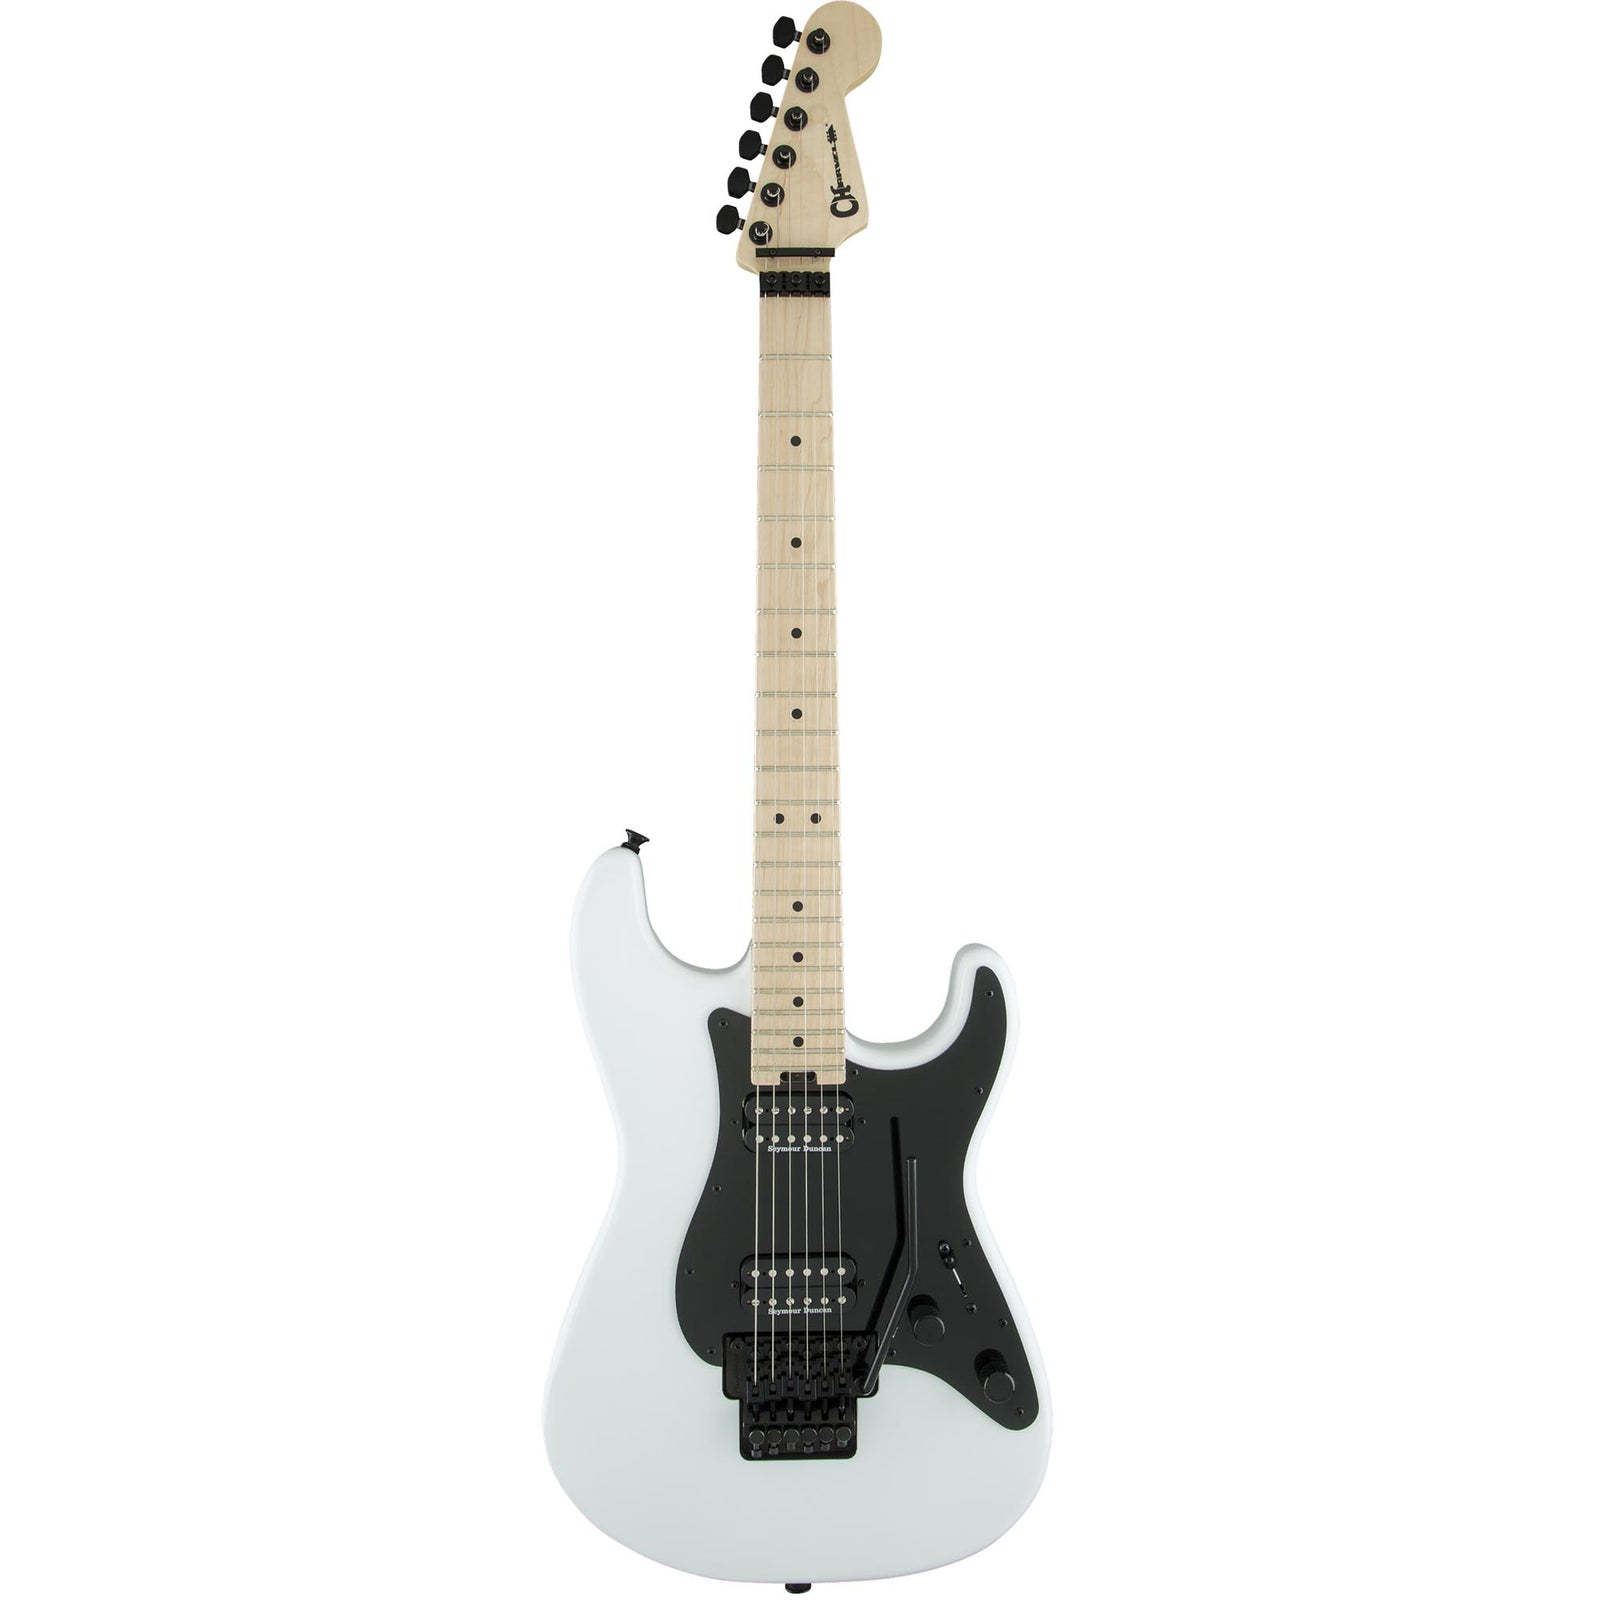 Charvel Pro Mod So Cal - Snow White - 2 Humbuckers - Floyd Rose - Image: 2